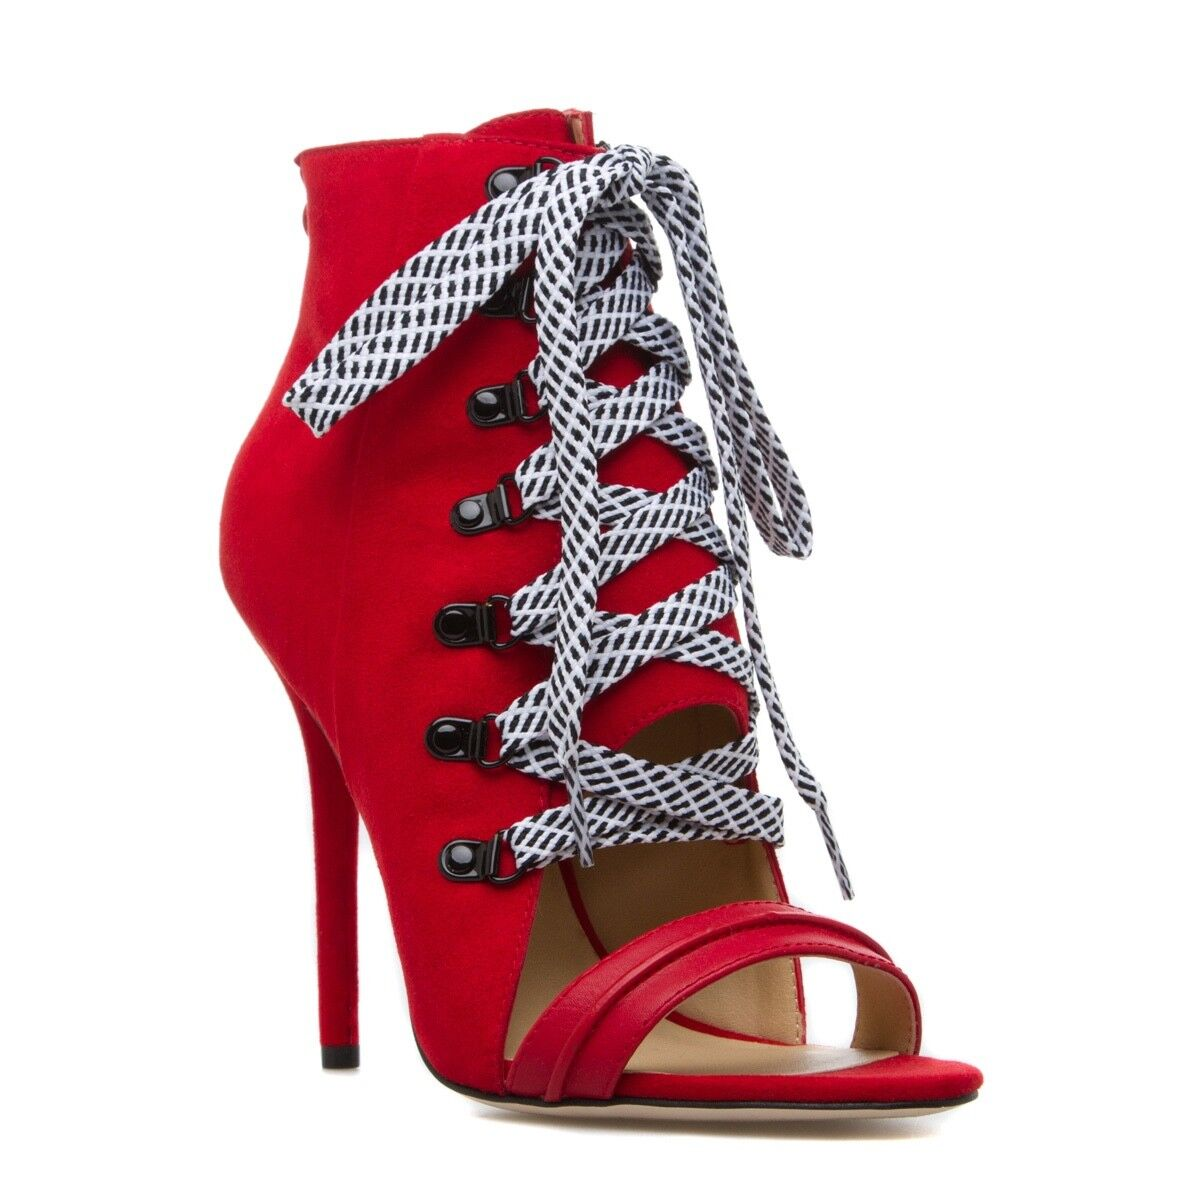 NEW Sexy Leather Peep-Toe avvioie by Gwen Stefani w  Laces & Back Zip Dimensione 7.5